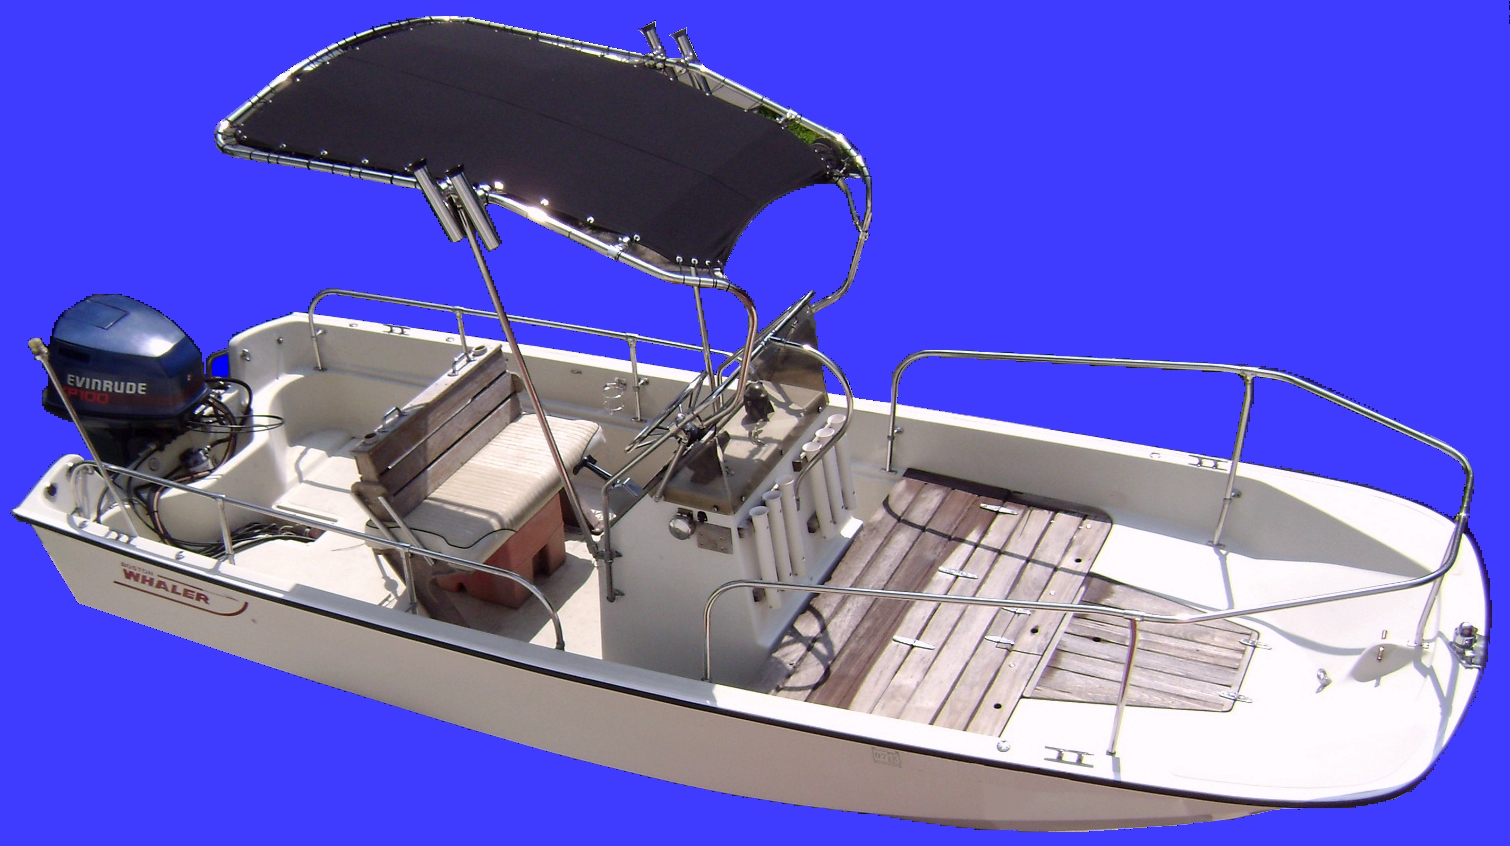 Montauk Shadow for Boston Whaler® Outrage 21 (2000-2001) from RNR